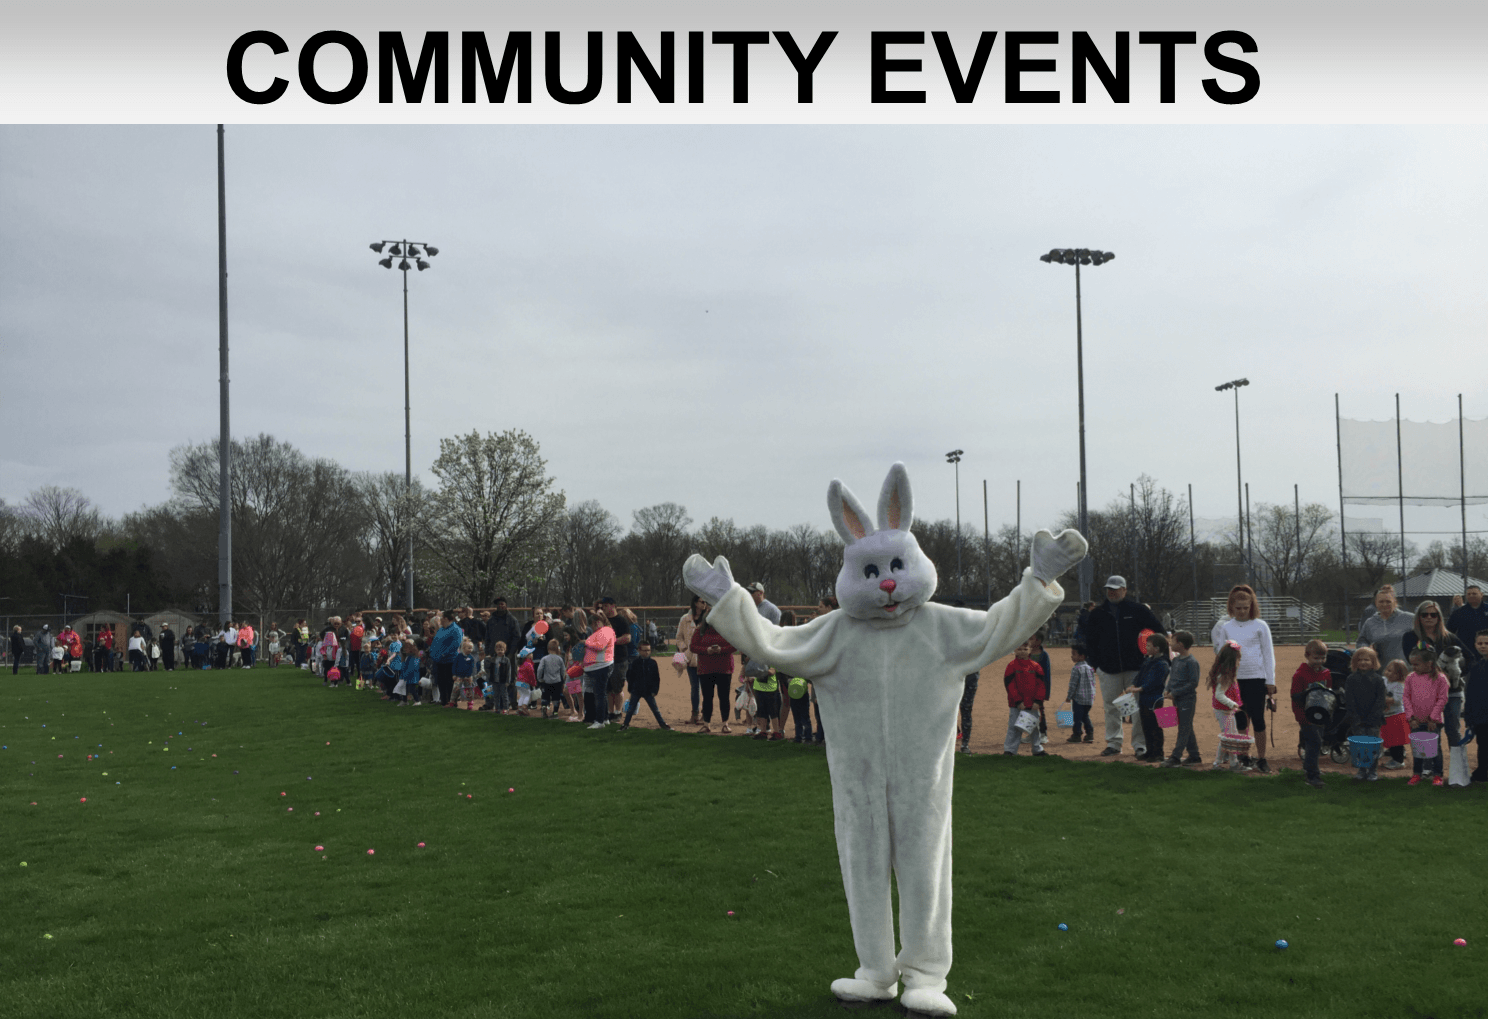 Community Events Image